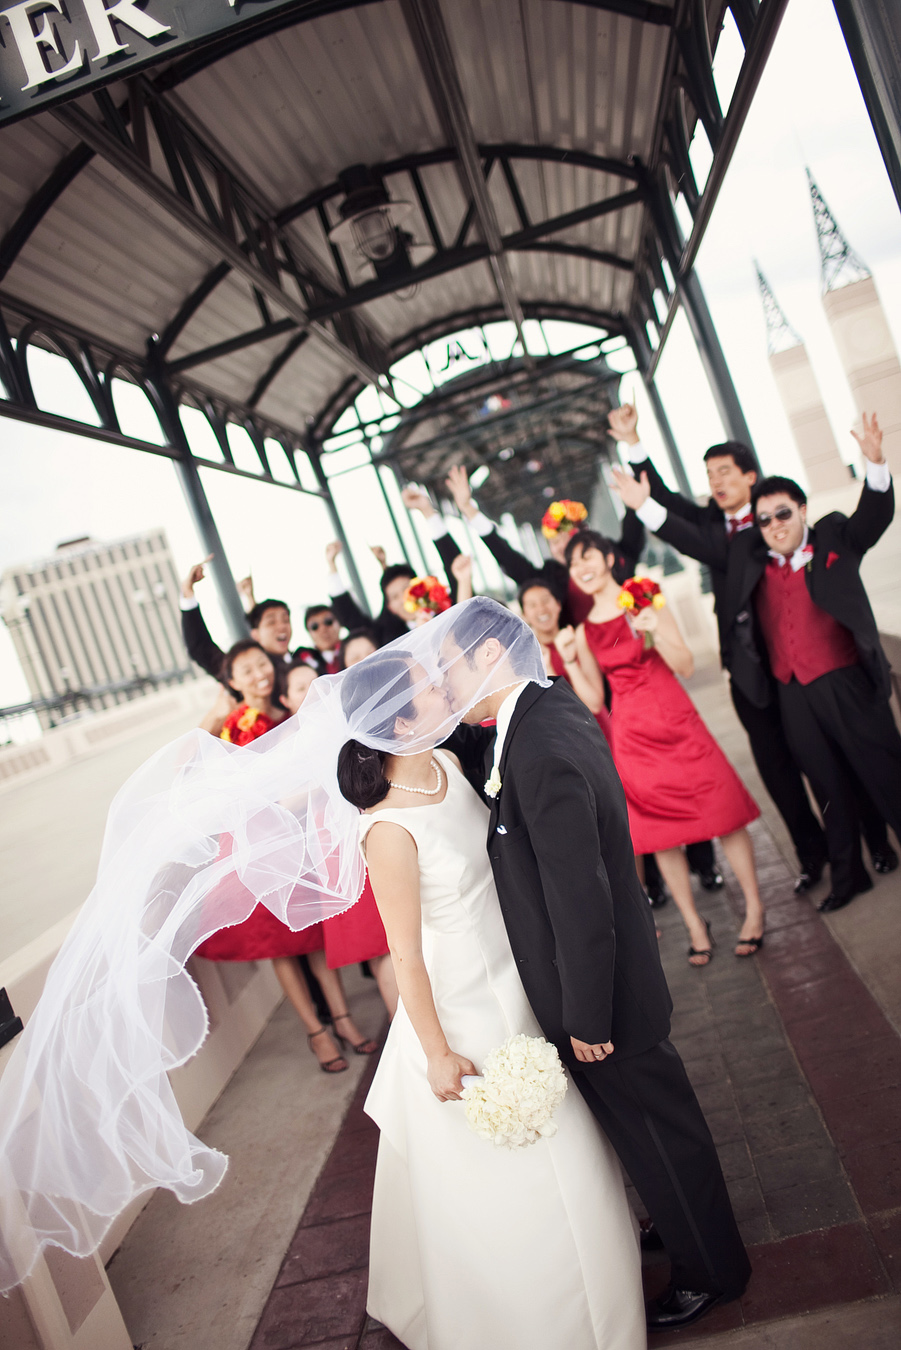 ballpark at arlington, dallas cowboys stadium wedding images